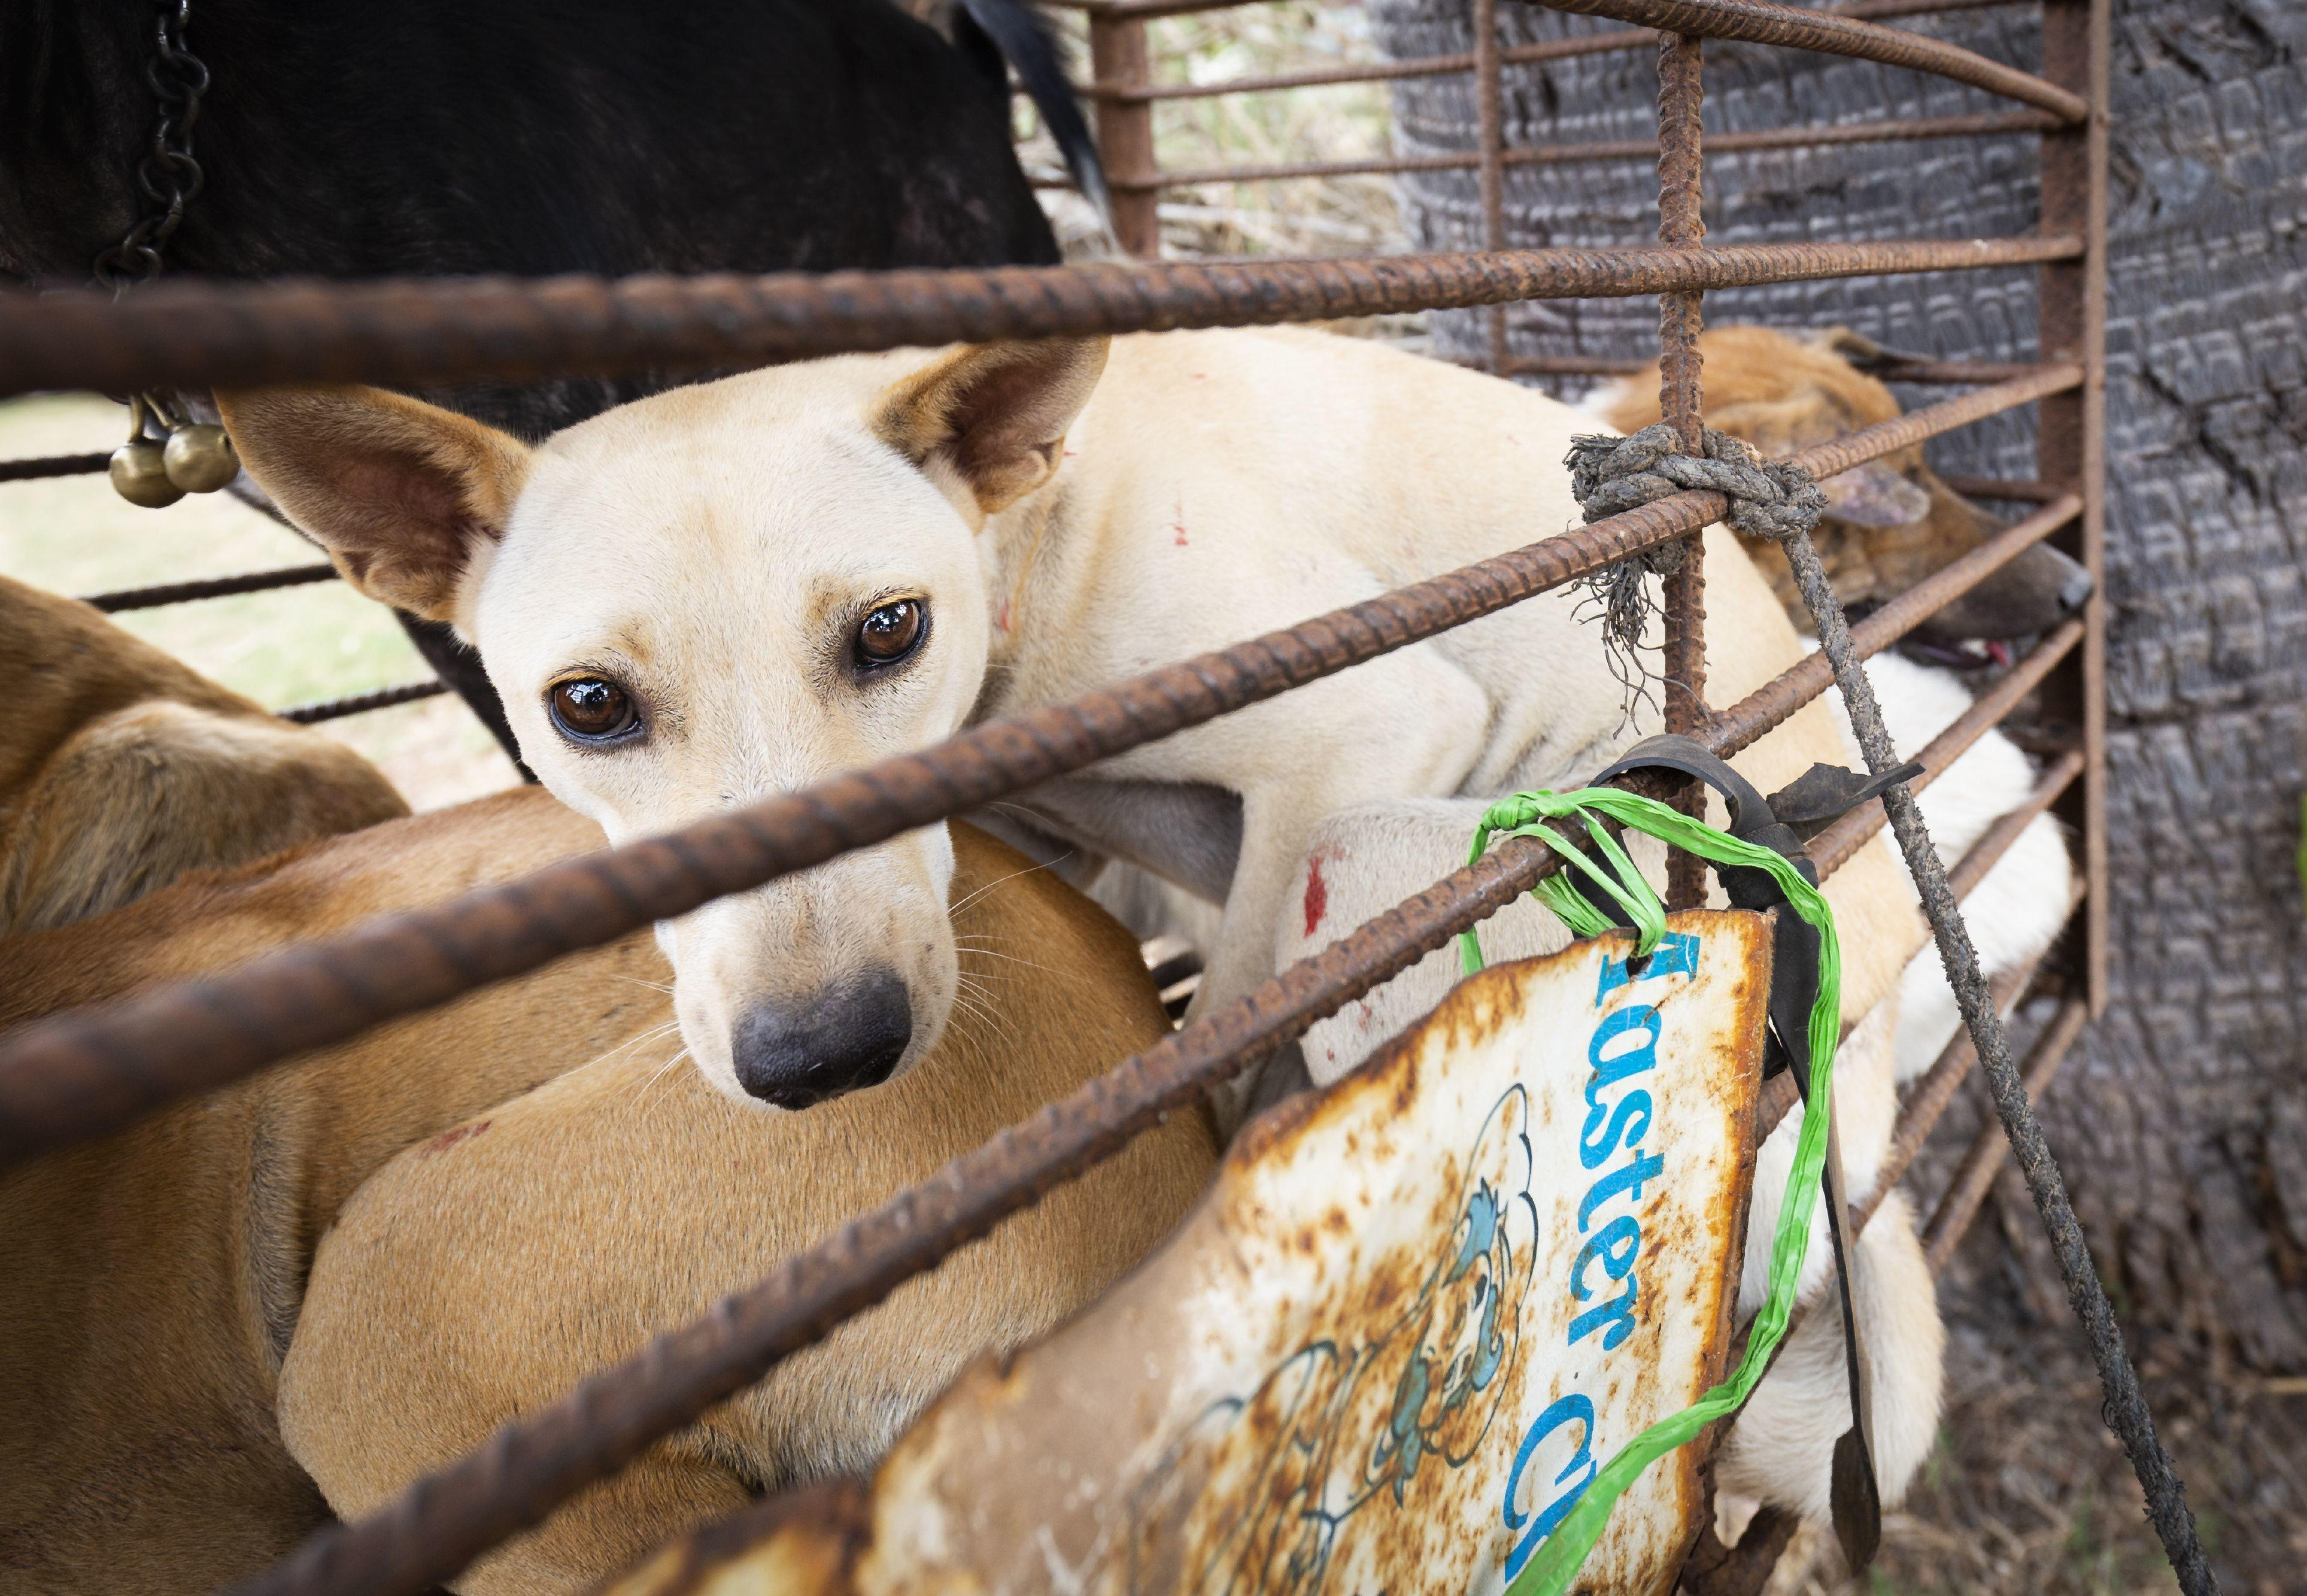 A dog in a cage on a motobike Takeo, Cambodia